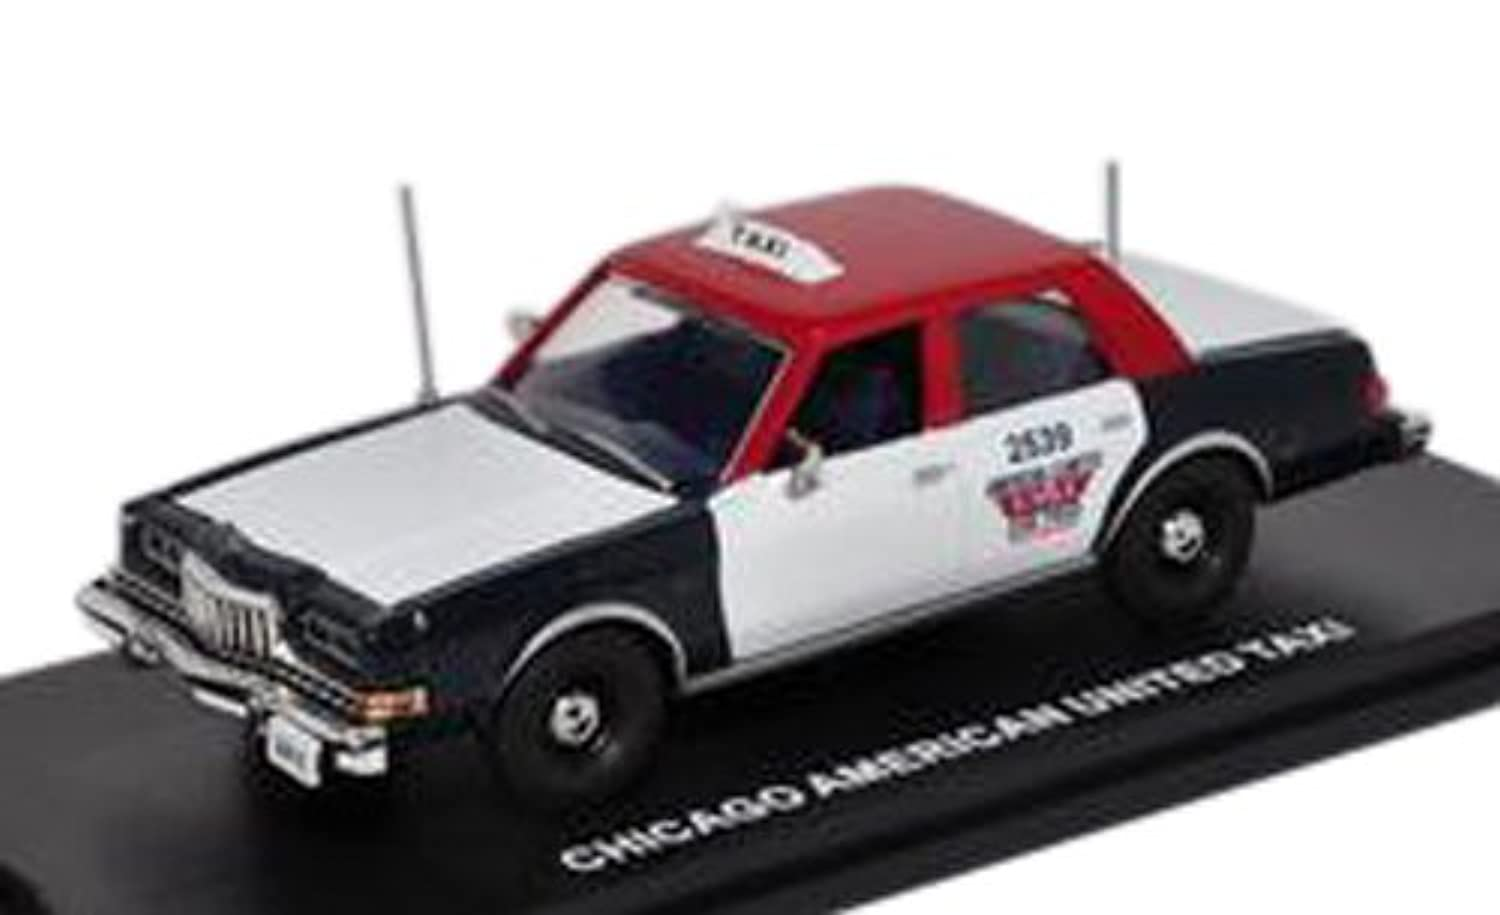 FIRST RESPONSE 1/43 Dodge Diplomat Chicago Taxi 1985 (Red/White/Blue) 完成品